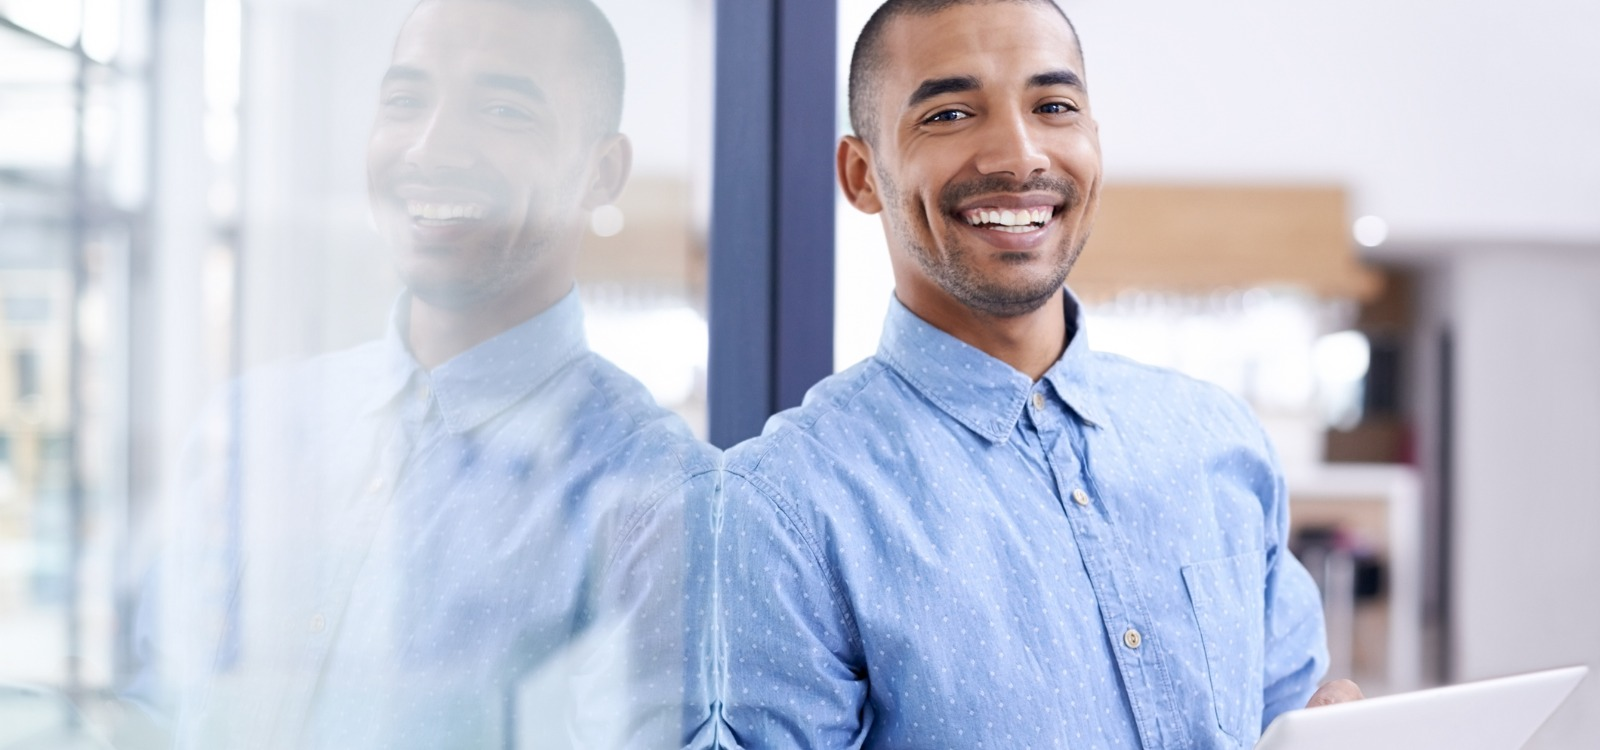 smiling businessman | business of experience